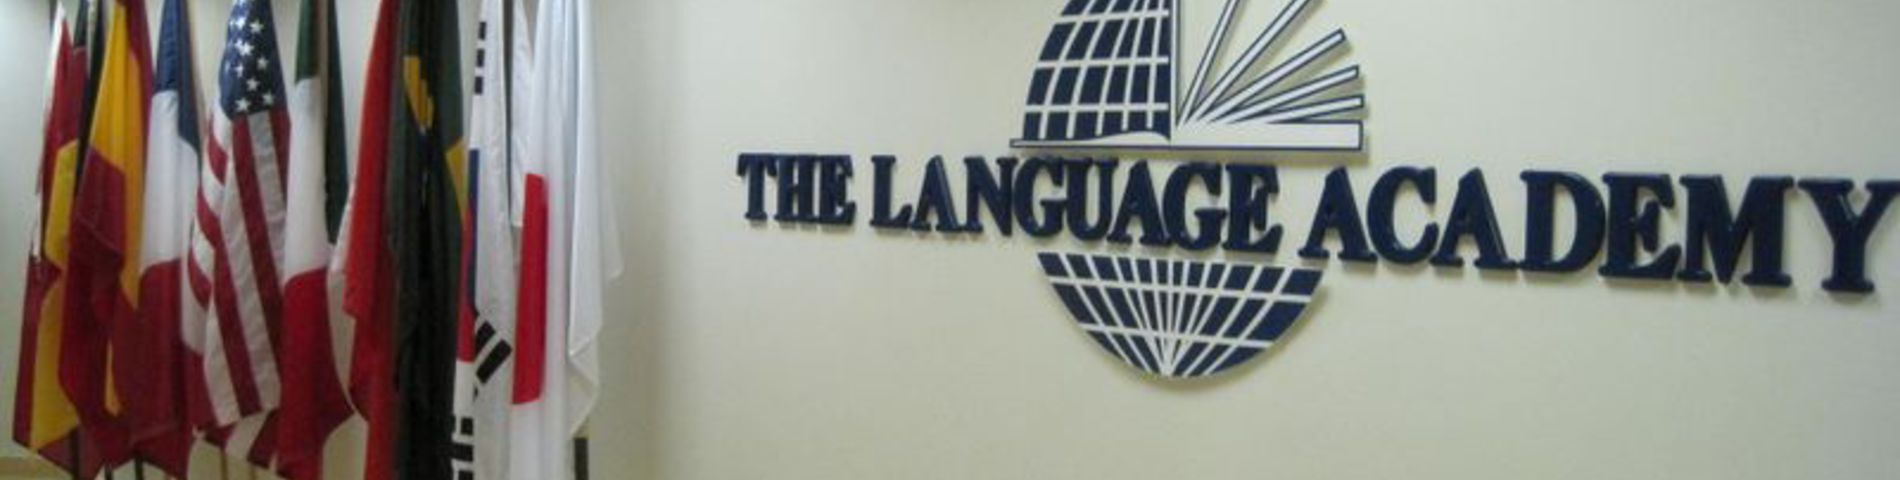 TLA-The Language Academy picture 12